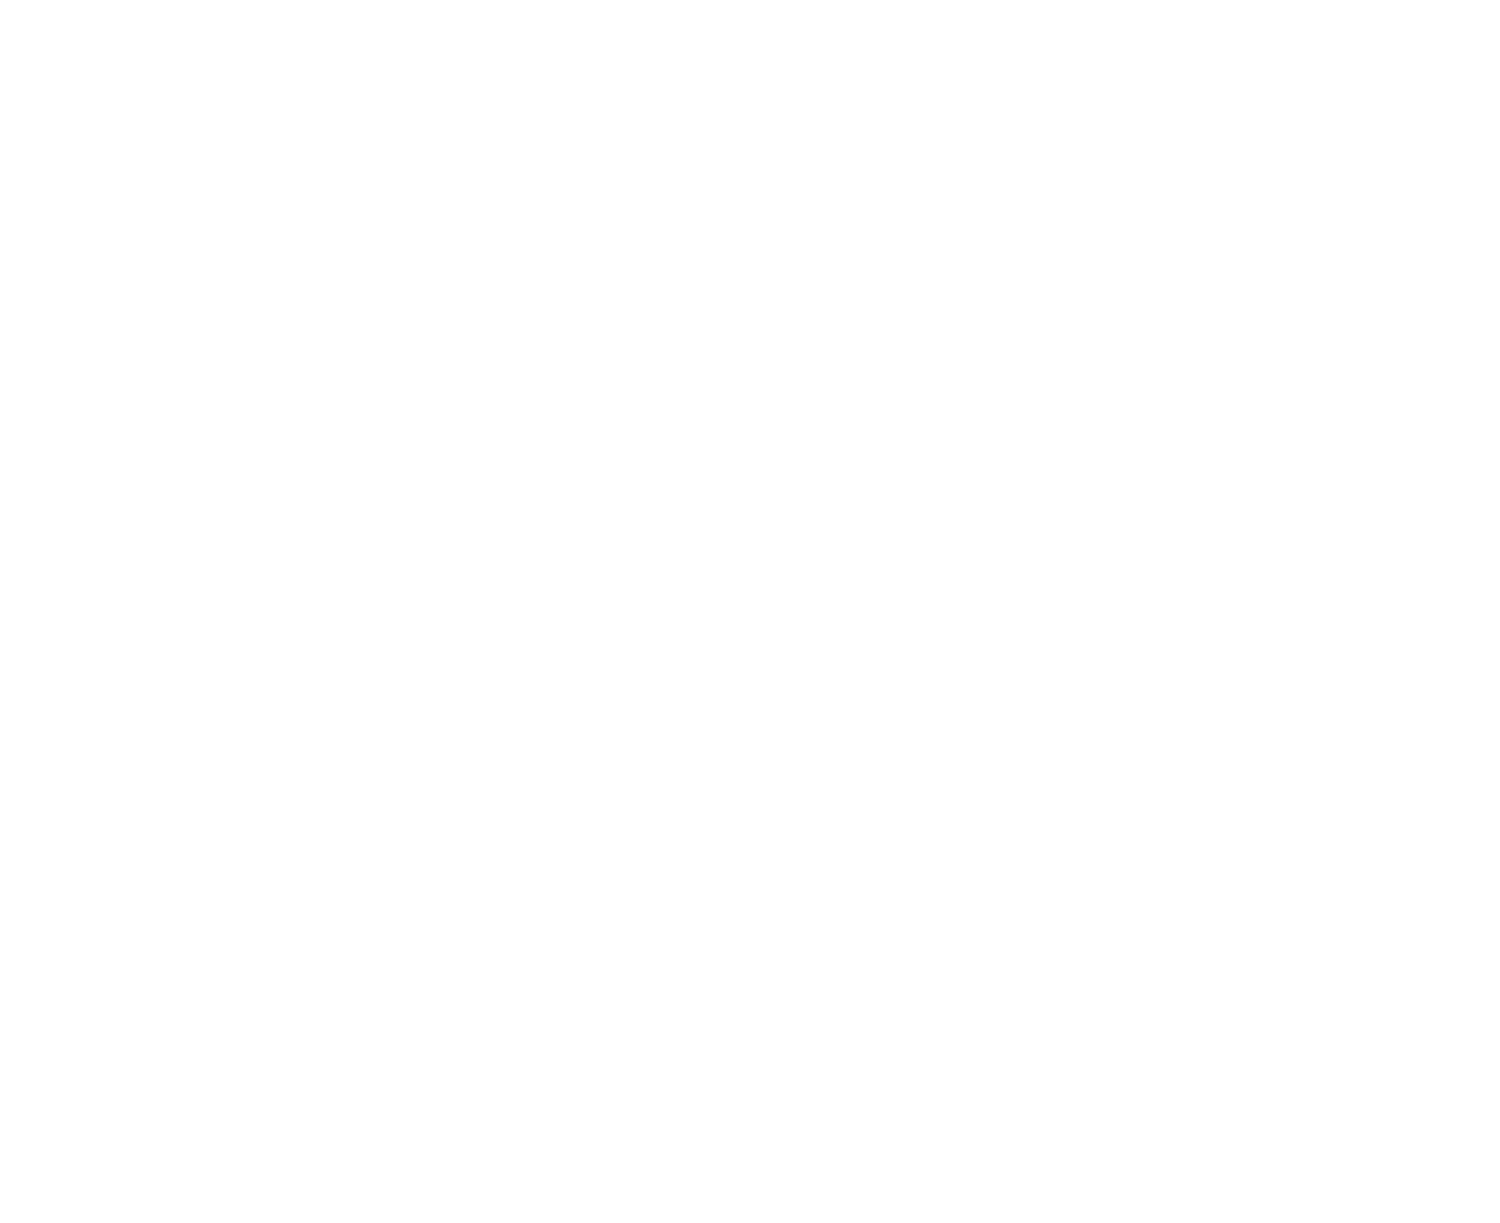 Reclaim: Freedom Beyond Rescue